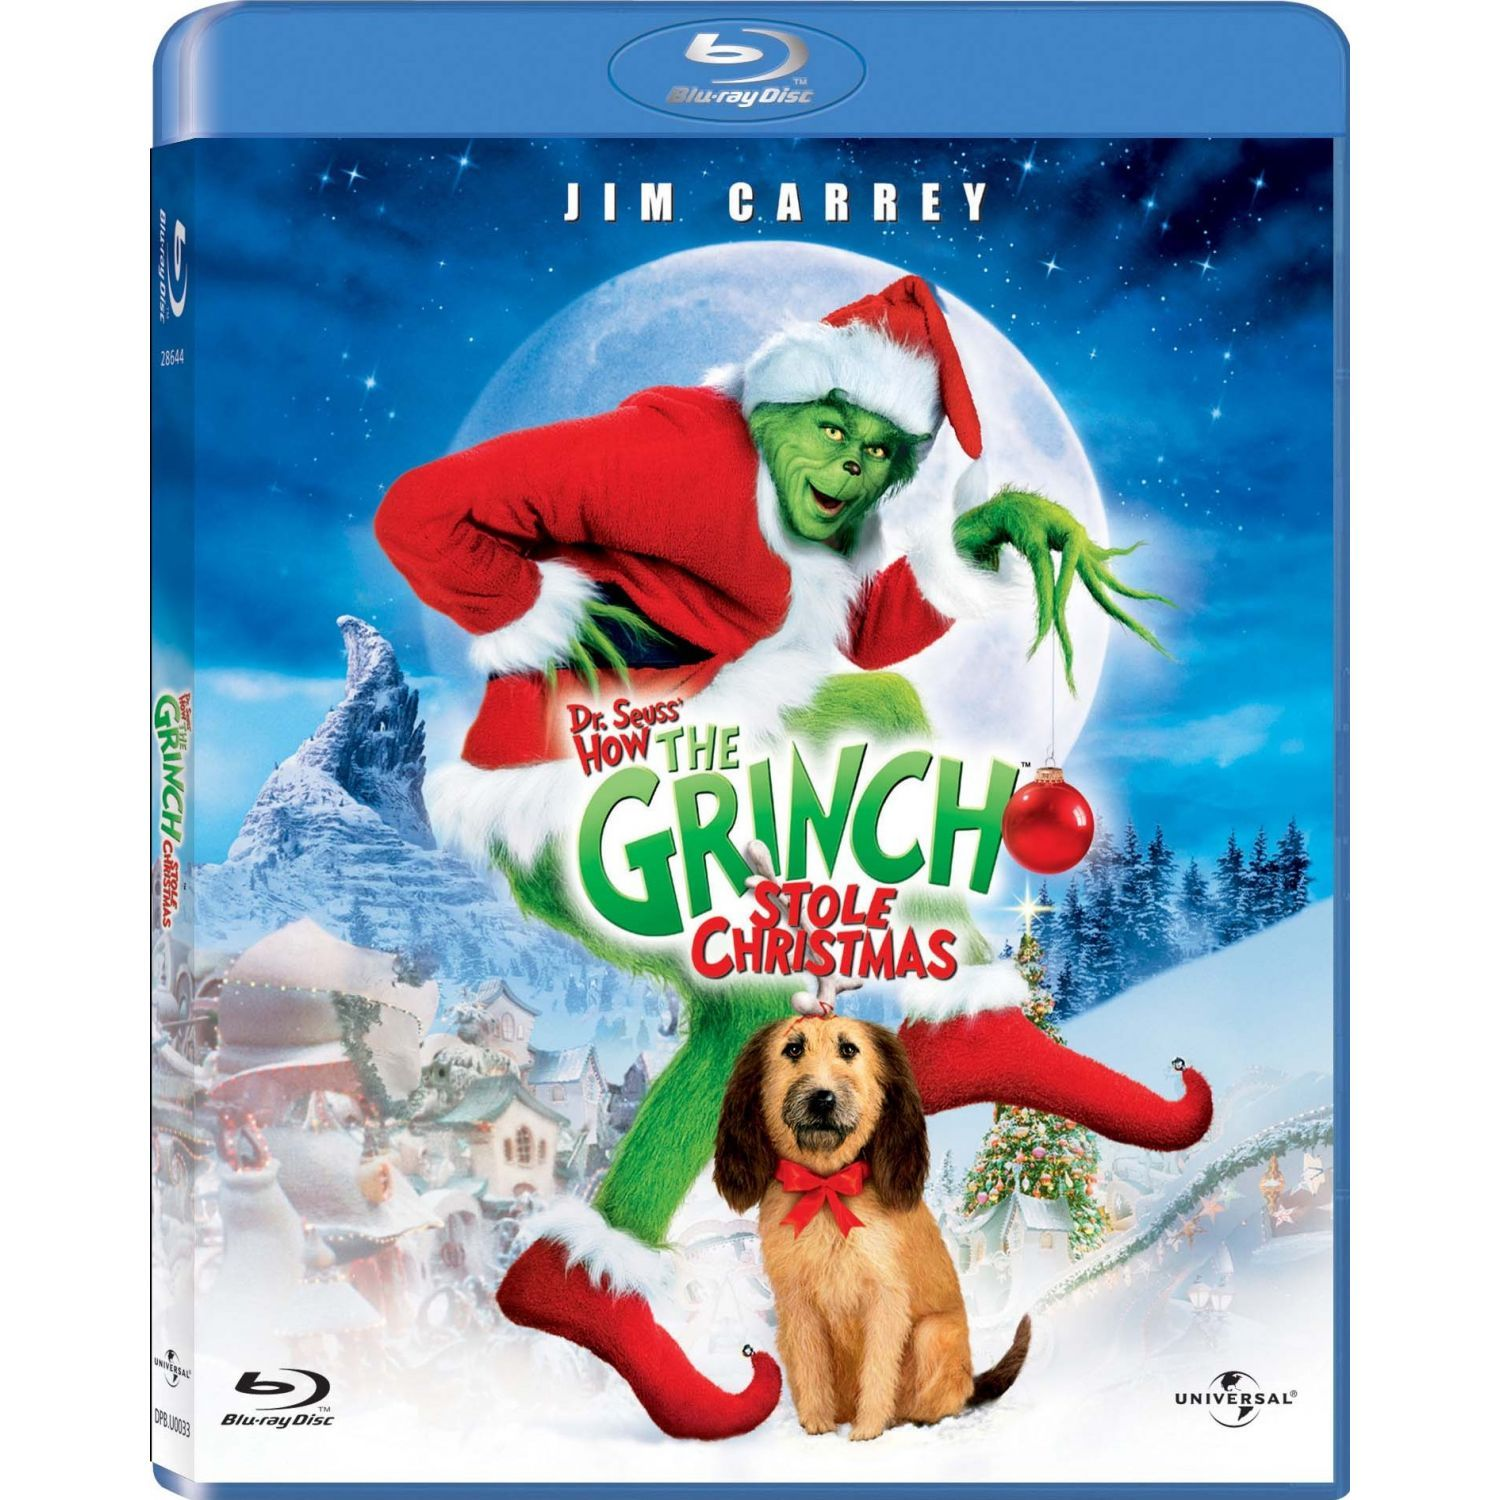 How The Grinch Stole Christmas Blu Ray.How The Grinch Stole Christmas Blu Ray Hd Shop Gr